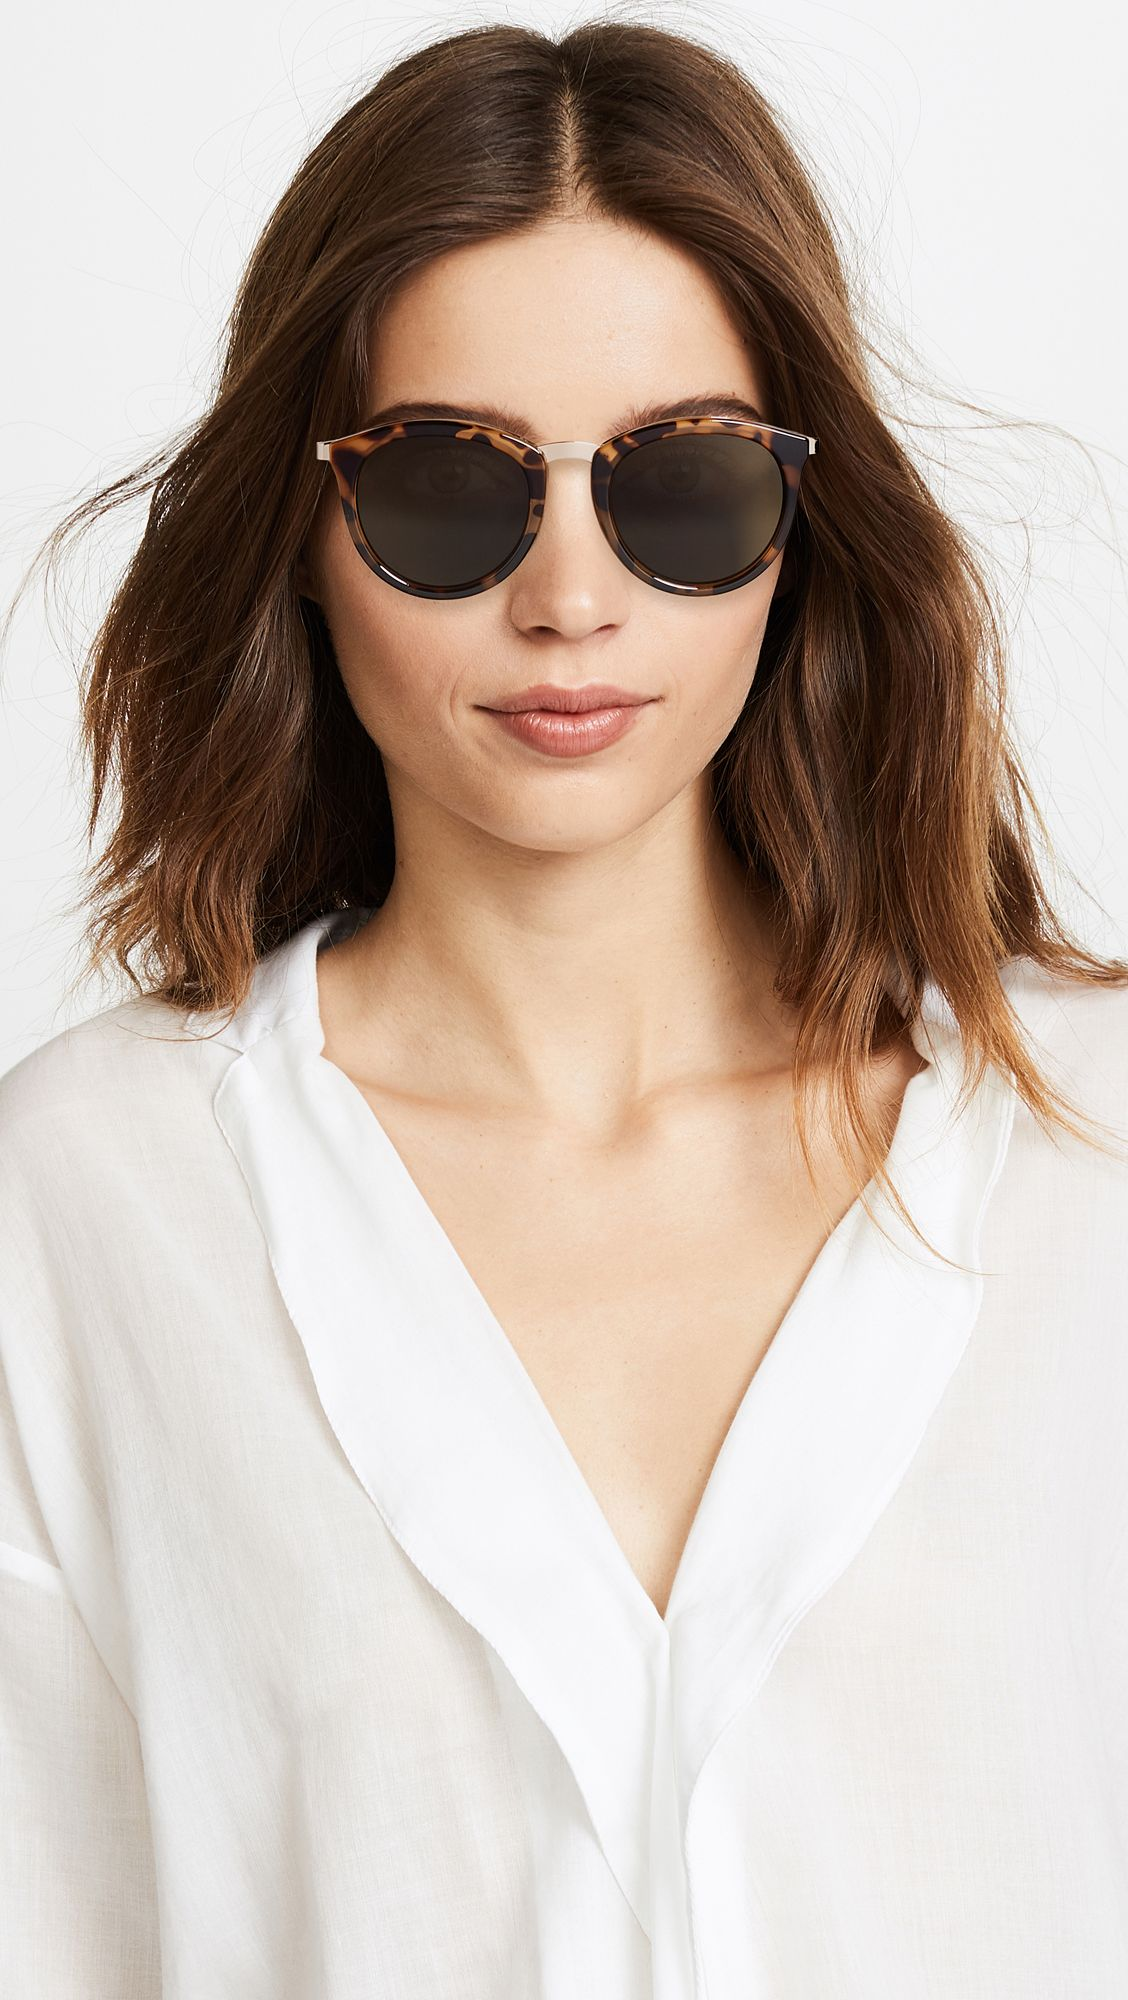 21b989d83d7d3 Le Specs No Smirking Sunglasses   SHOPBOP SAVE UP TO 25% Use Code  GOBIG18